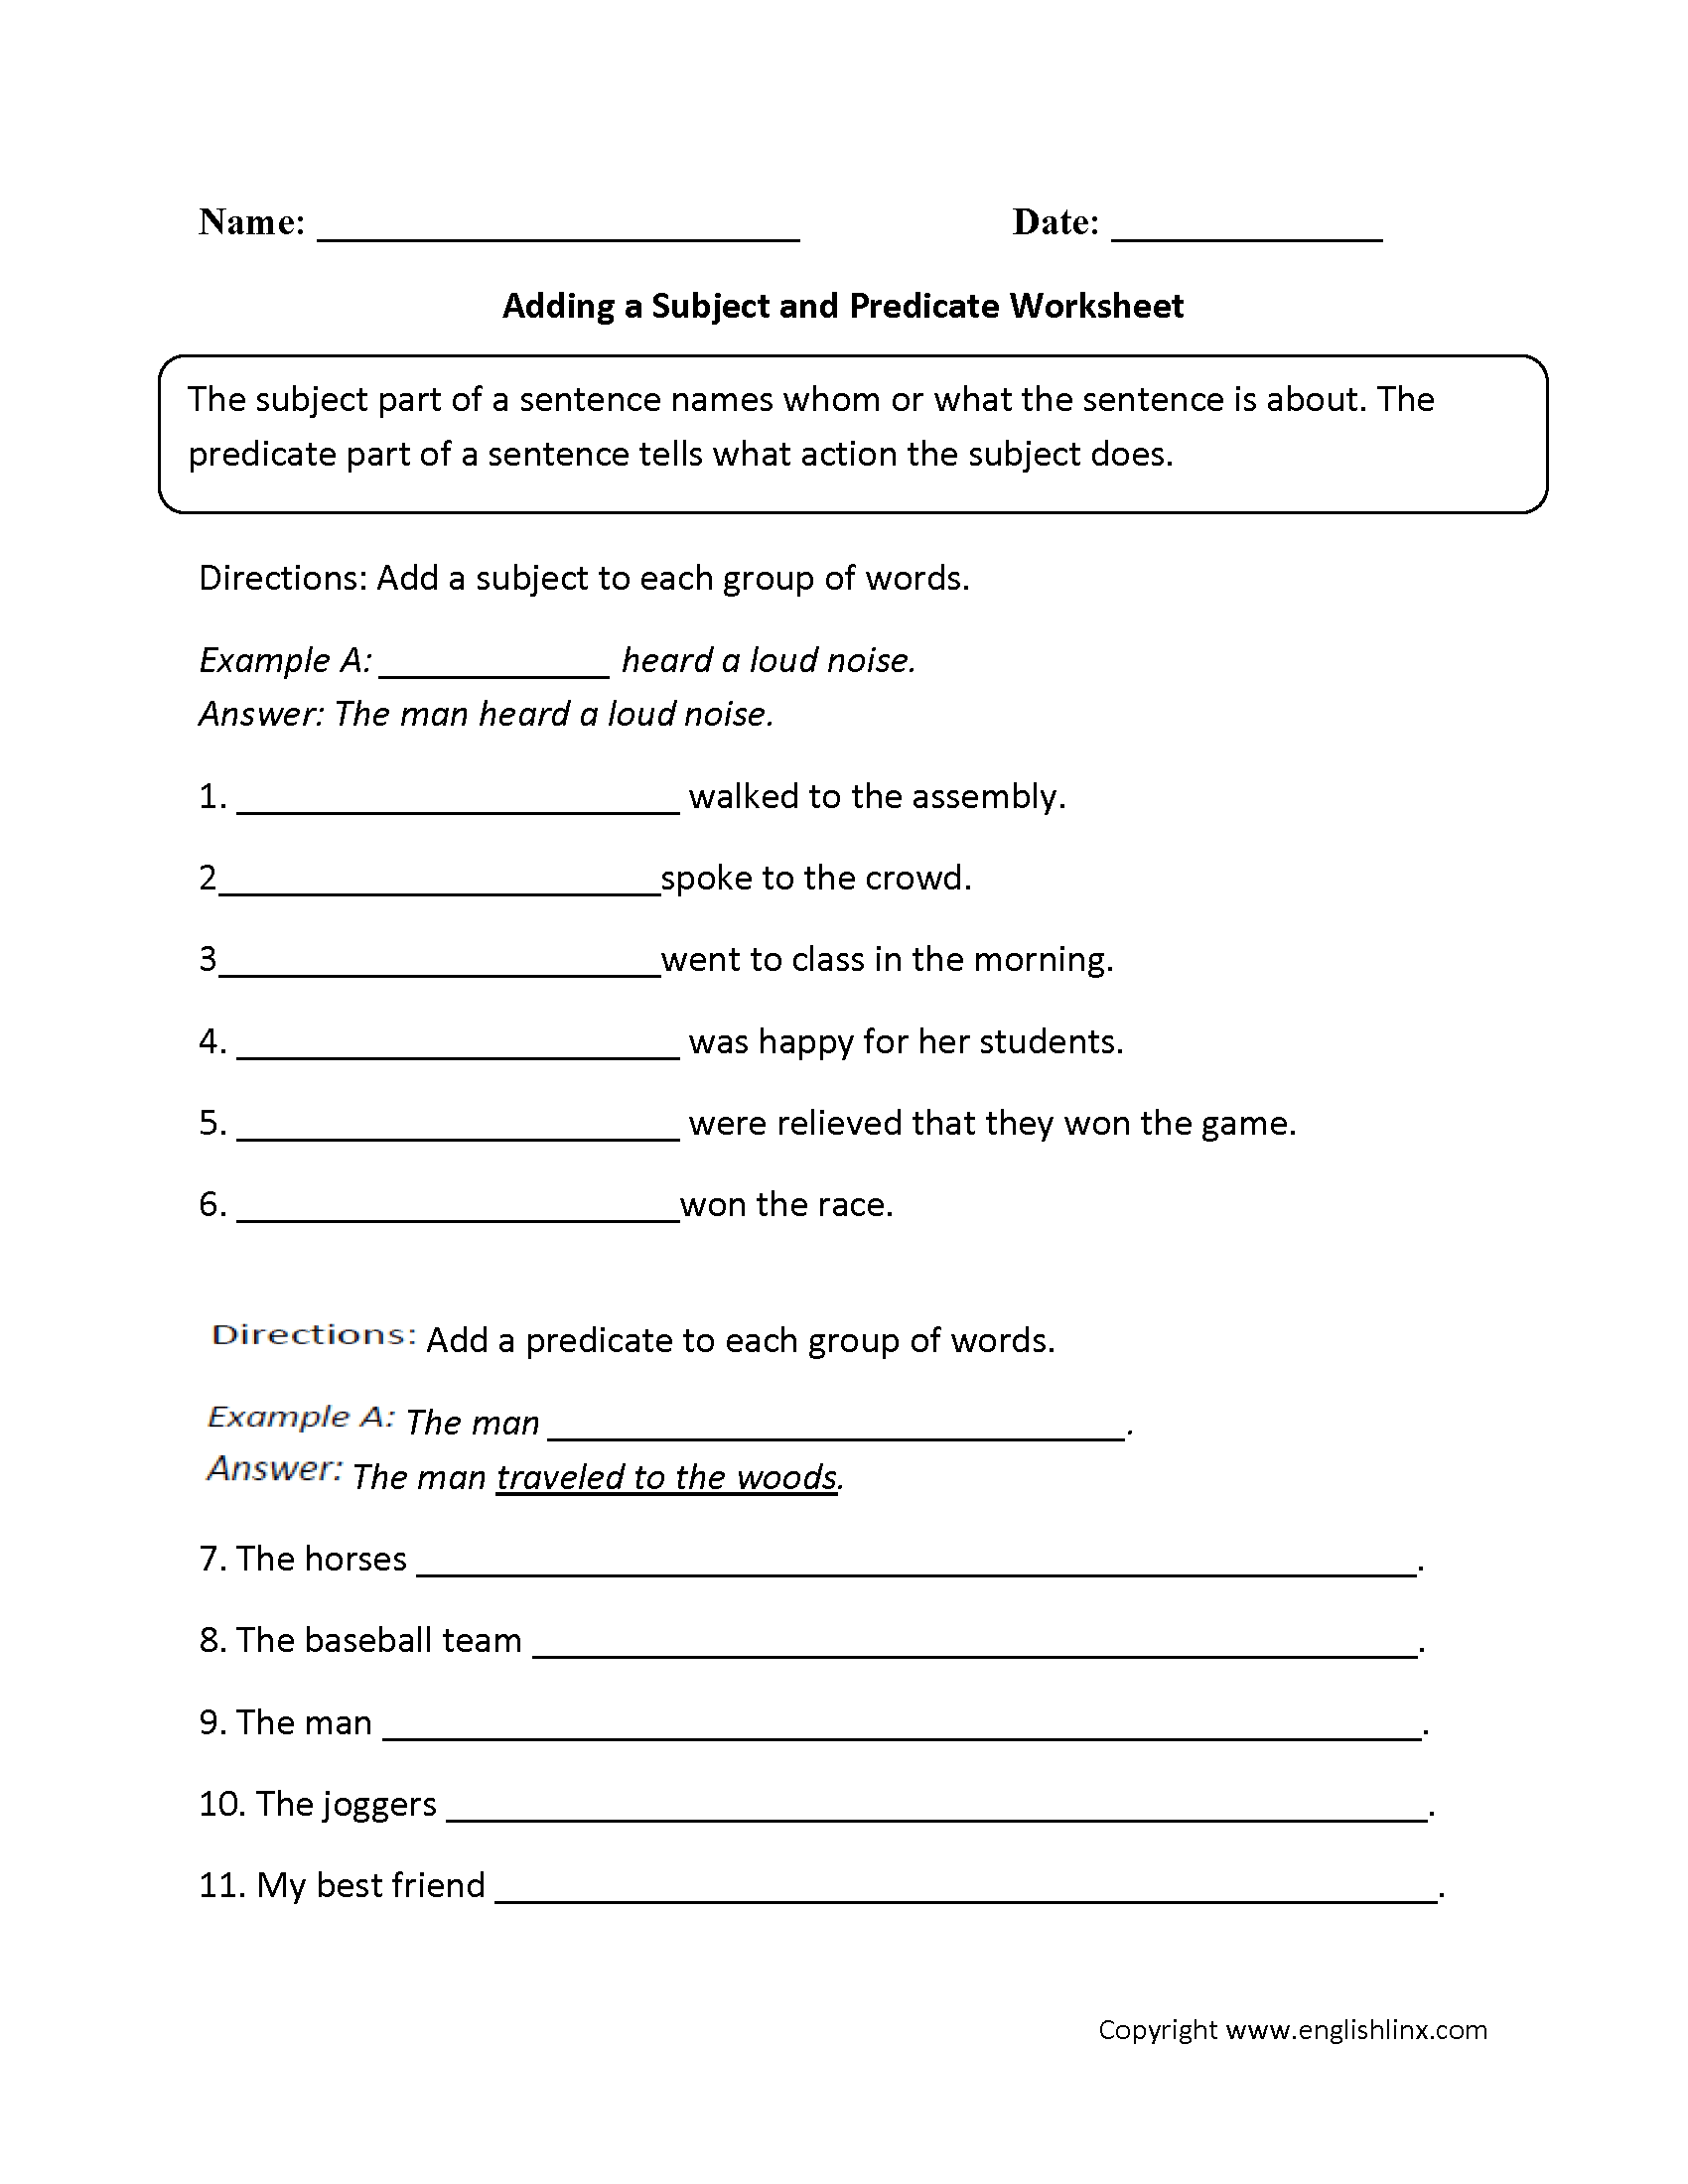 Worksheets Grammar For 4th Grade Worksheets adding a subject and predicate worksheet 4th grade reading these worksheets are great for working with use fo